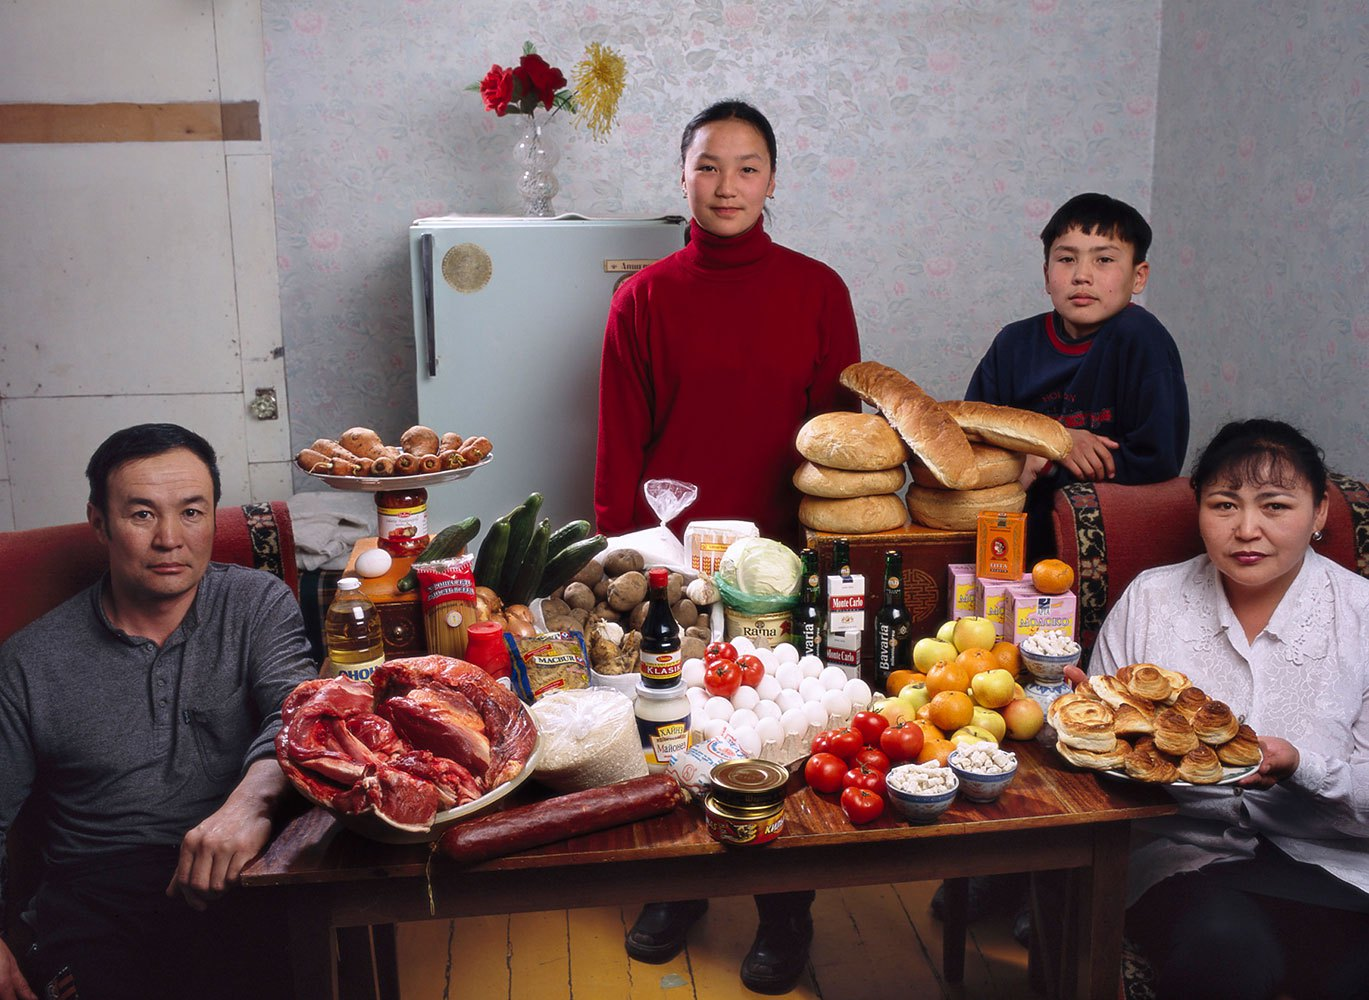 Mongolia: The Batsuuri family of Ulaanbaatar.                                                              Food expenditure for one week: 41,985.85 togrogs or $40.02.                               Family recipe: Mutton dumplings.